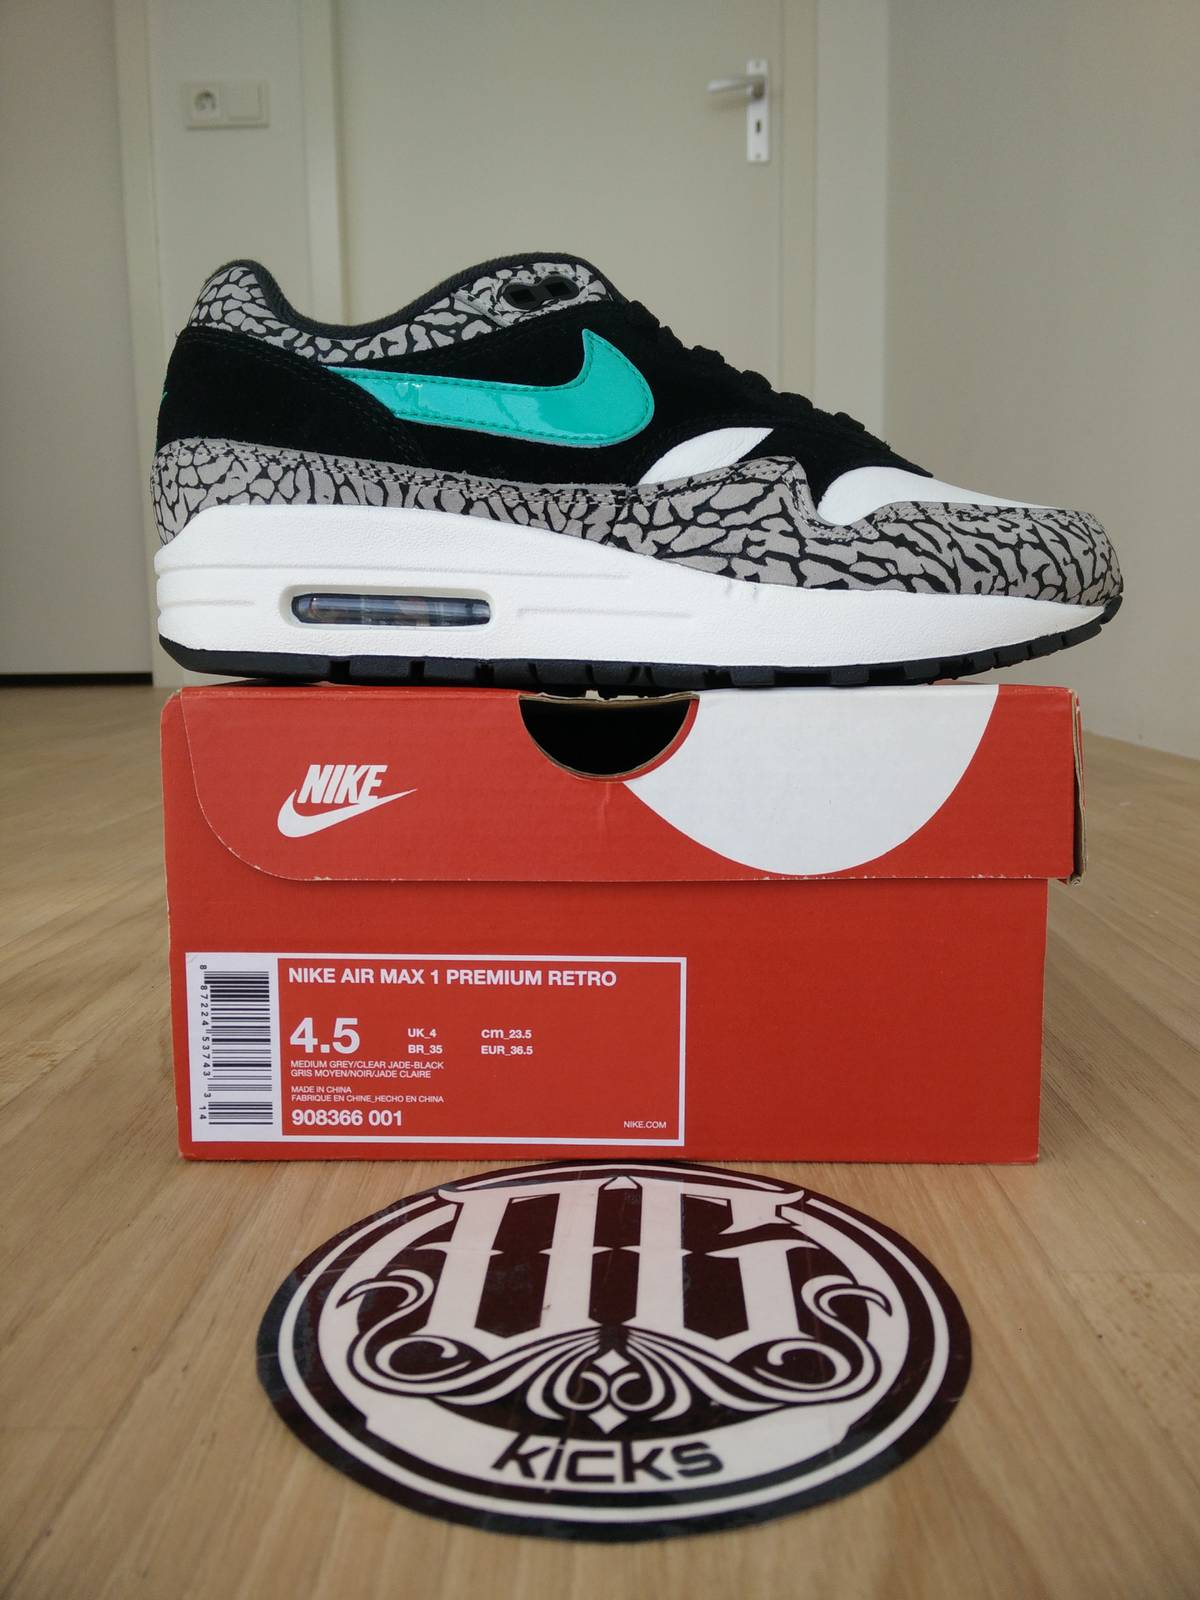 cheap for discount 688df 27046 Nike Air Max 1 Atmos Elephant 2017 Sz us 4.5 - photo 1/8 ...